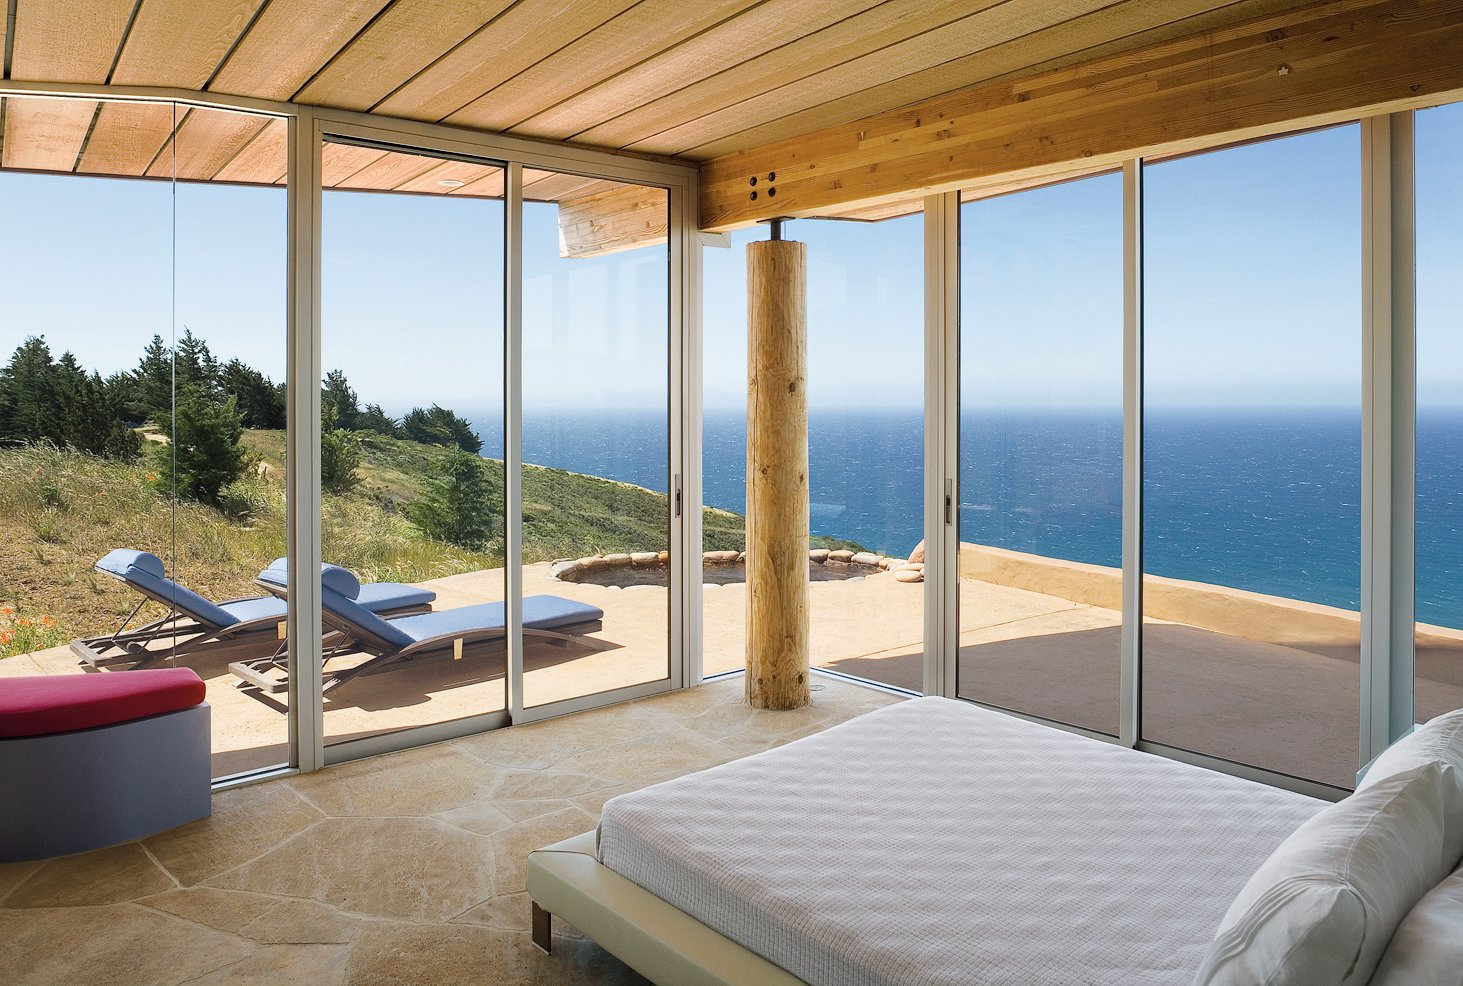 Bedroom, Bed, and Bench Two walls of floor-to-ceiling windows in the master bedroom frame expansive vistas of the Pacific Ocean.  Best Photos from Big Sur: Going Coastal